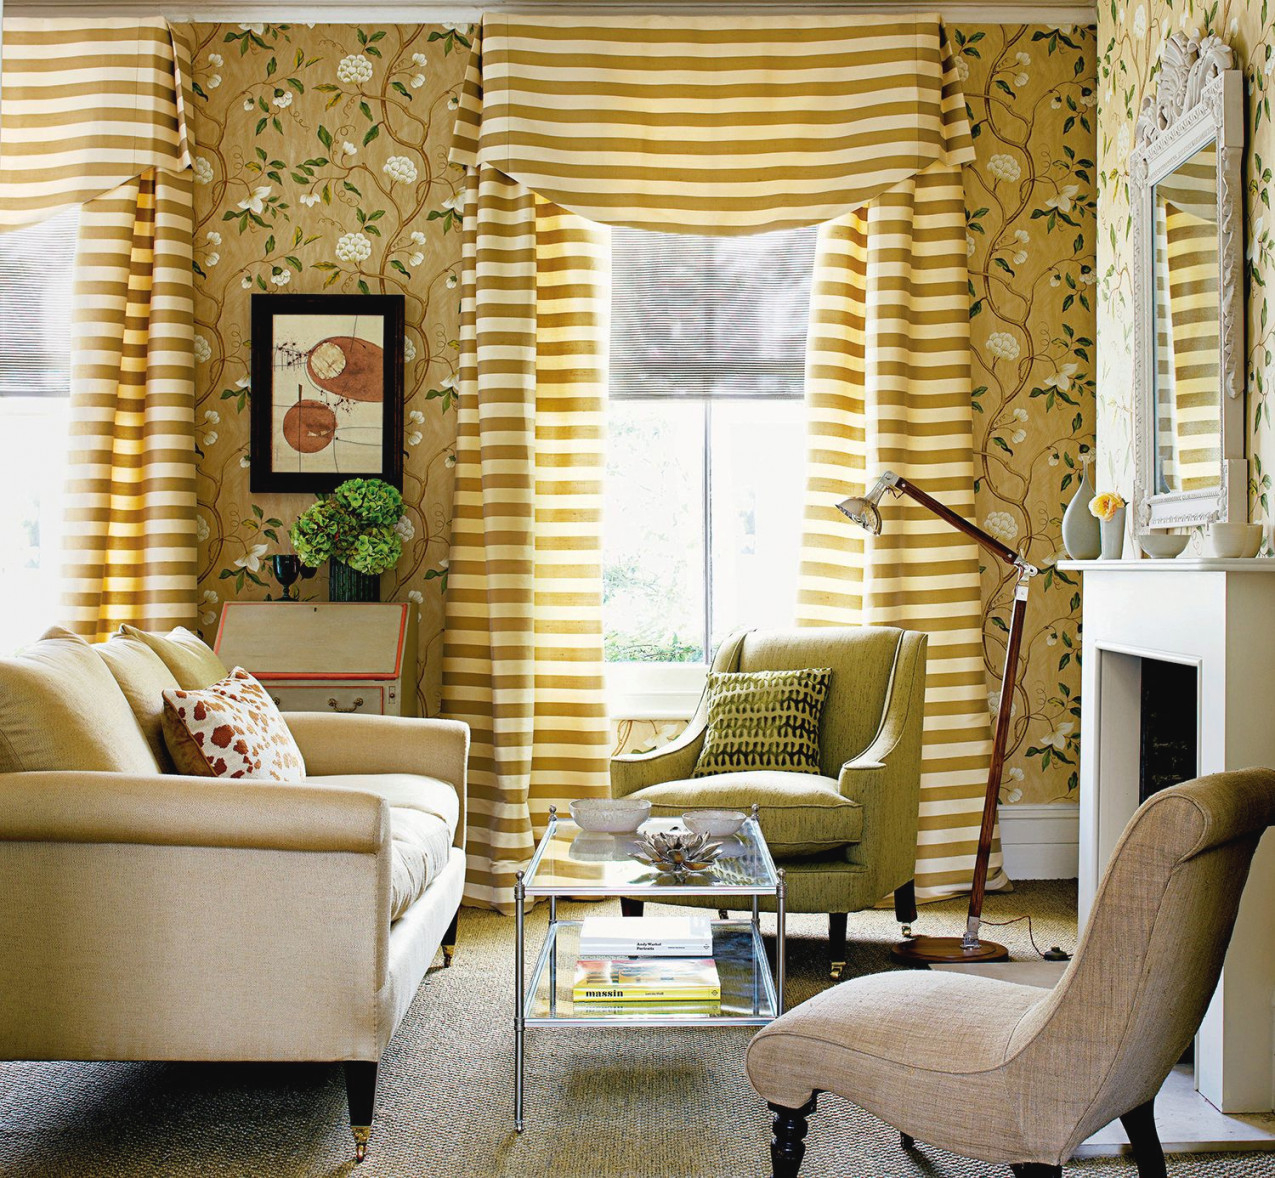 20 Best Living Room Curtain Ideas - Living Room Window pertaining to Curtains For Living Room Windows